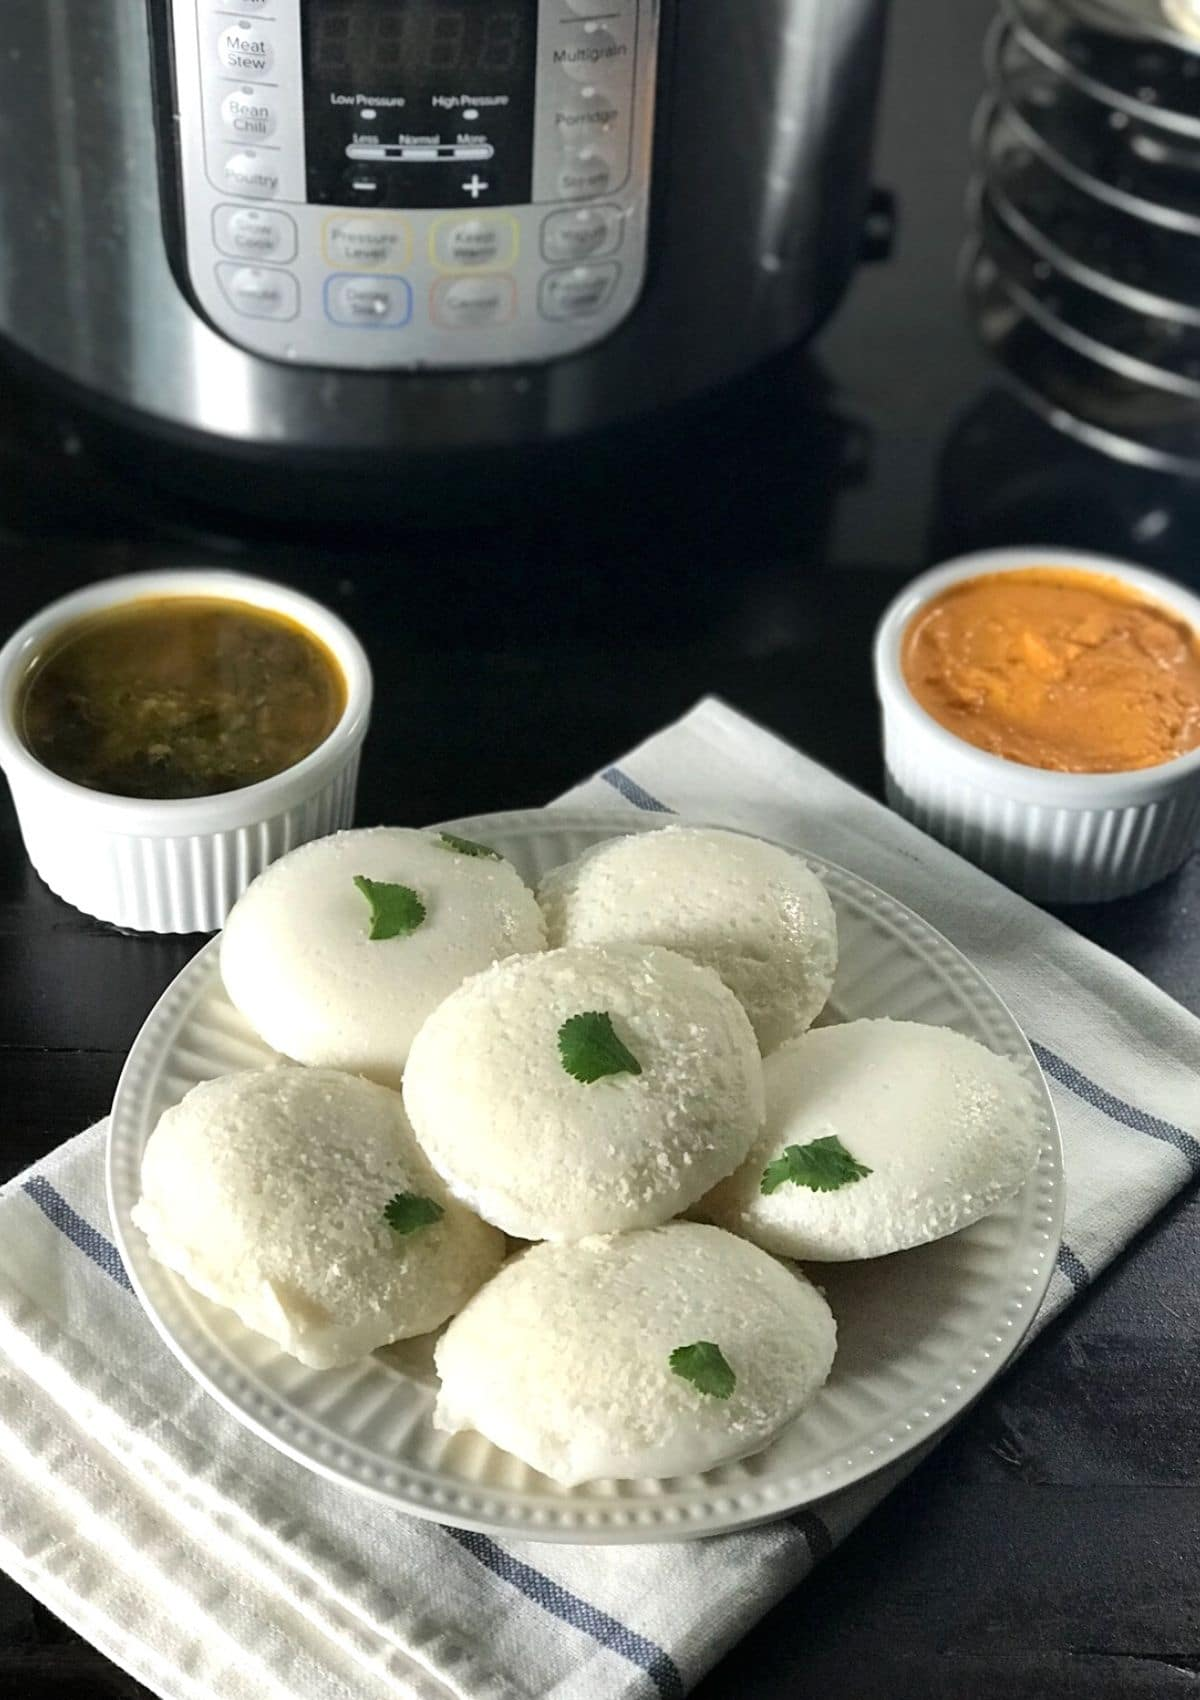 A plate with idli and bowl of chutney